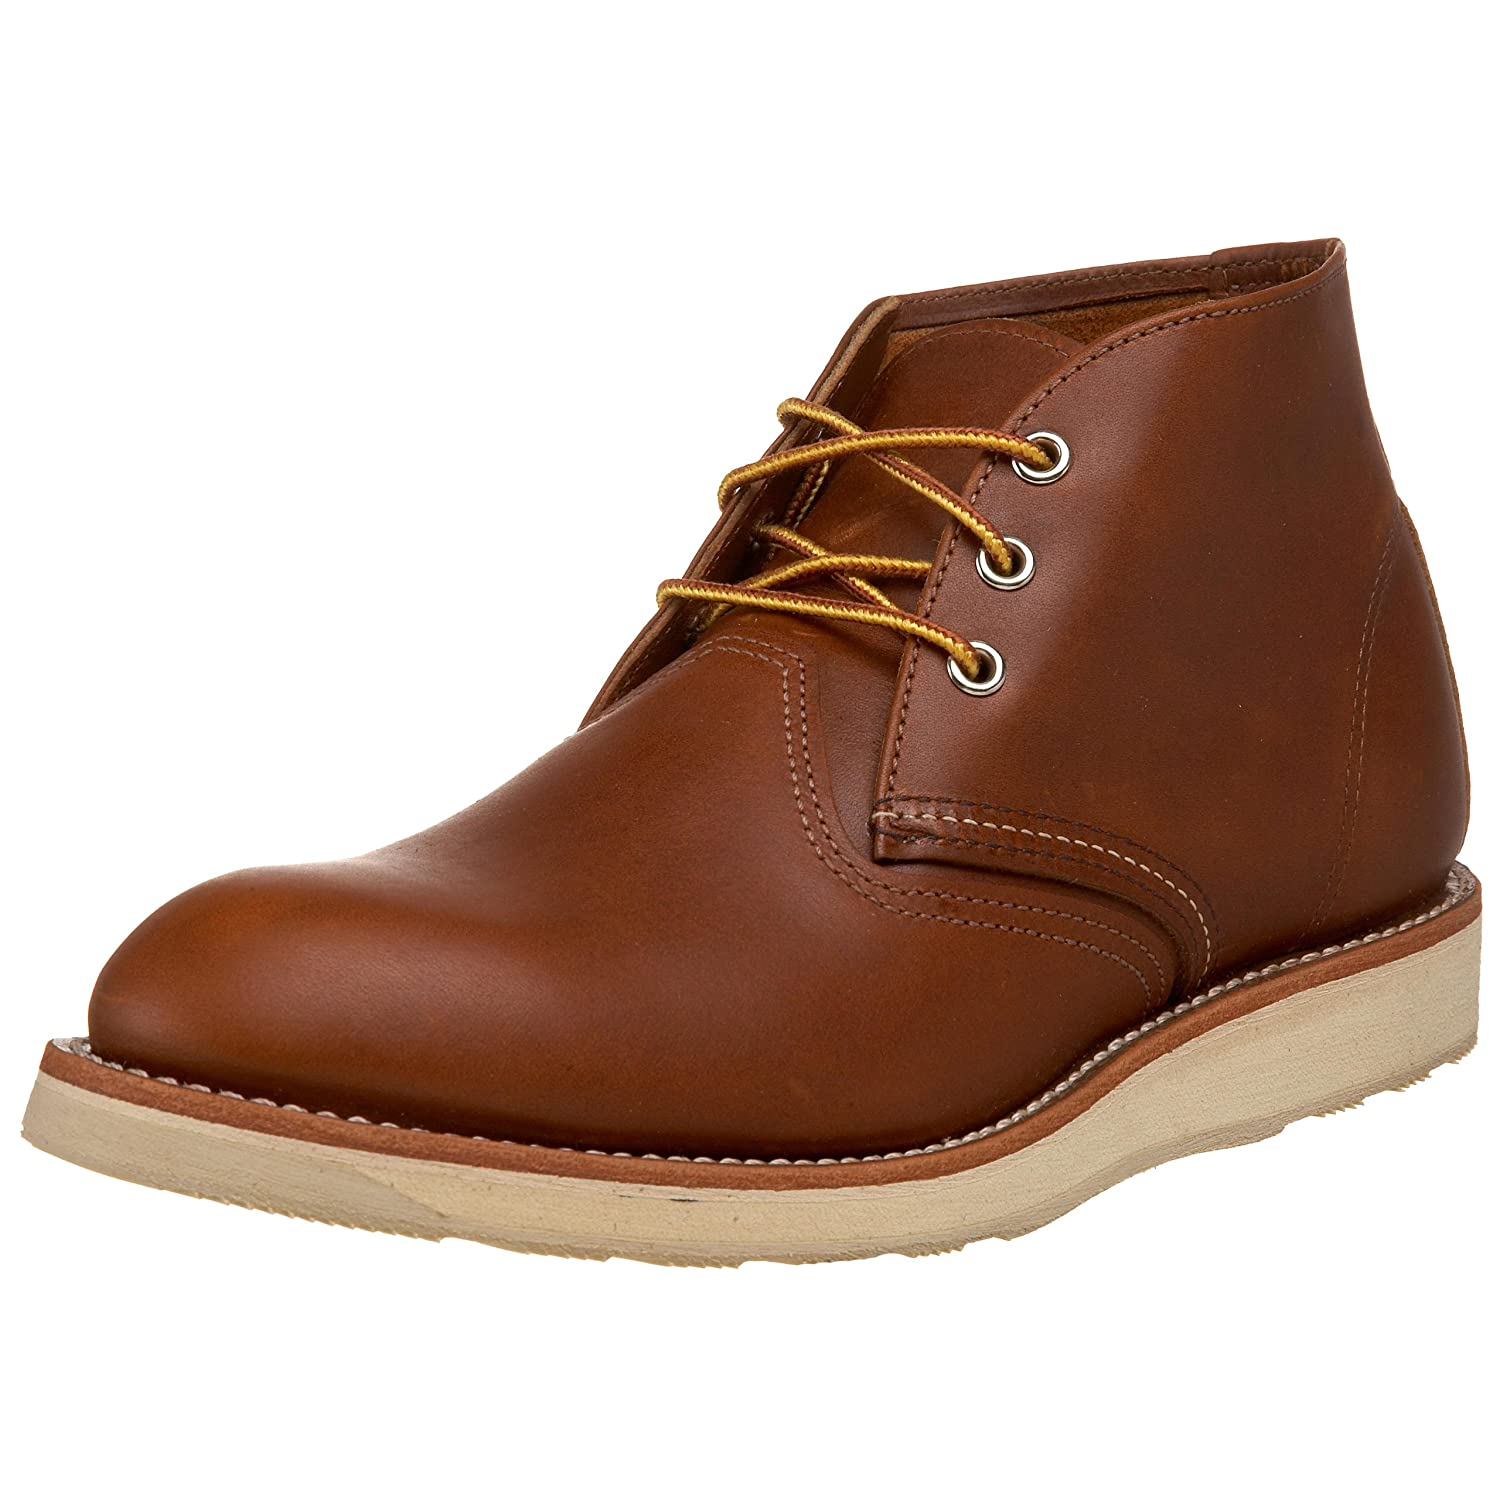 Red wing work boots coupons